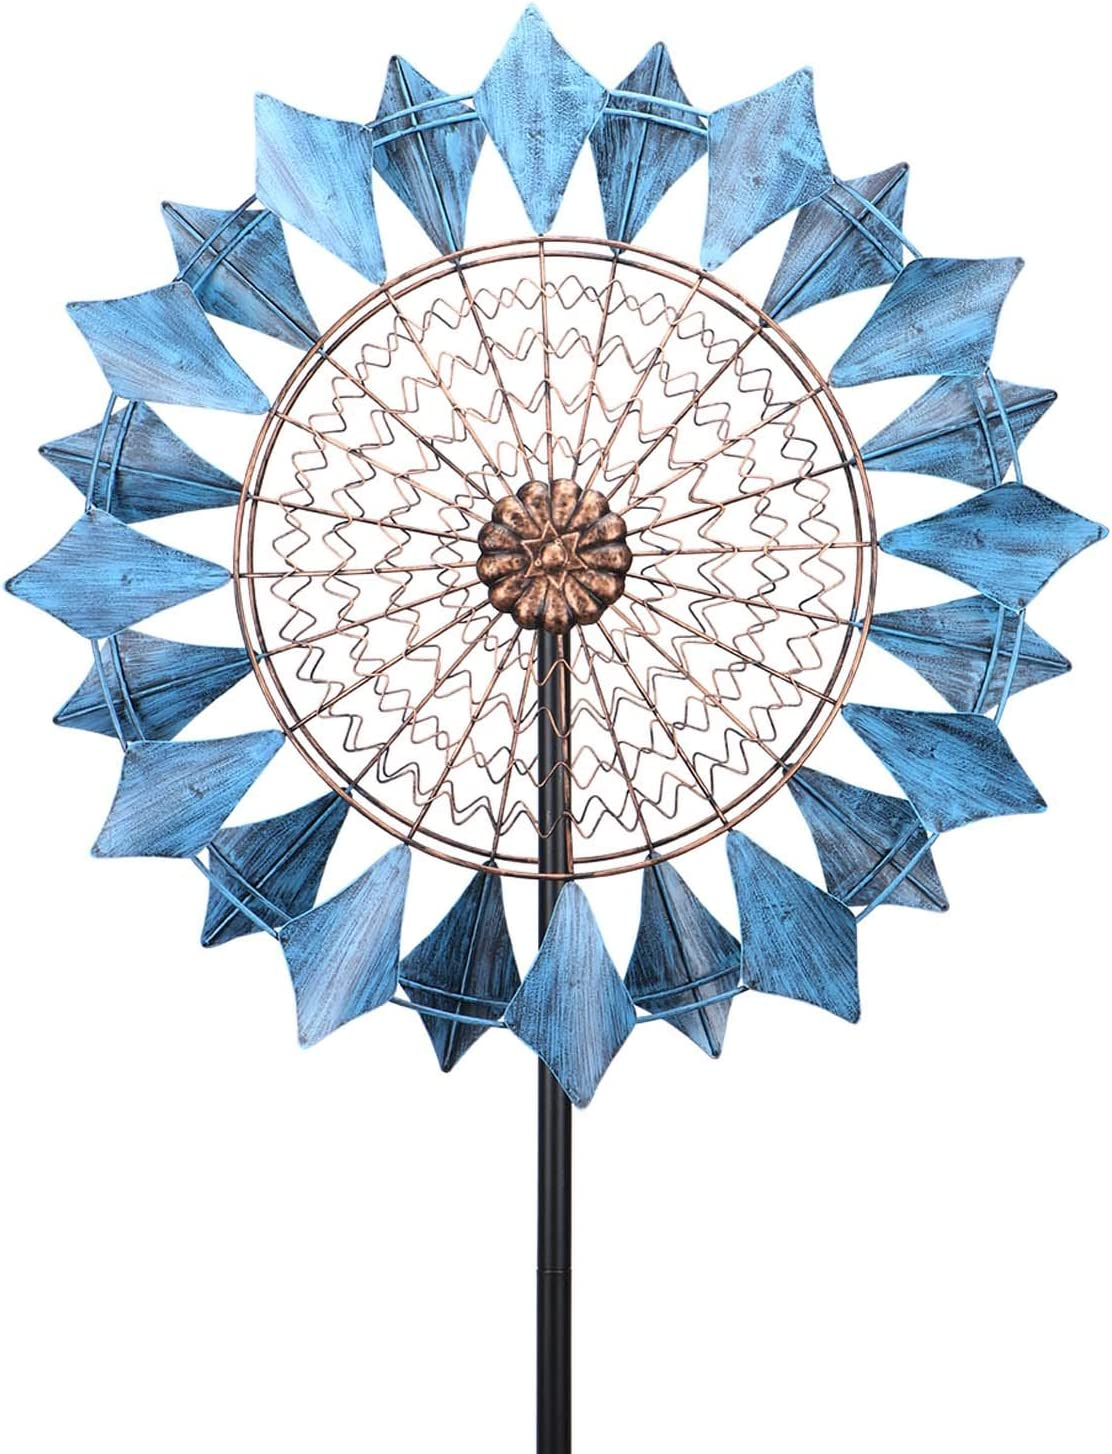 """Wind Spinner 24"""" Wind Sculptures 360 Degrees Double-Sided Decorative for Patio Lawn and Garden Let You Feel Different Visual Effects and Relax Your Mood"""